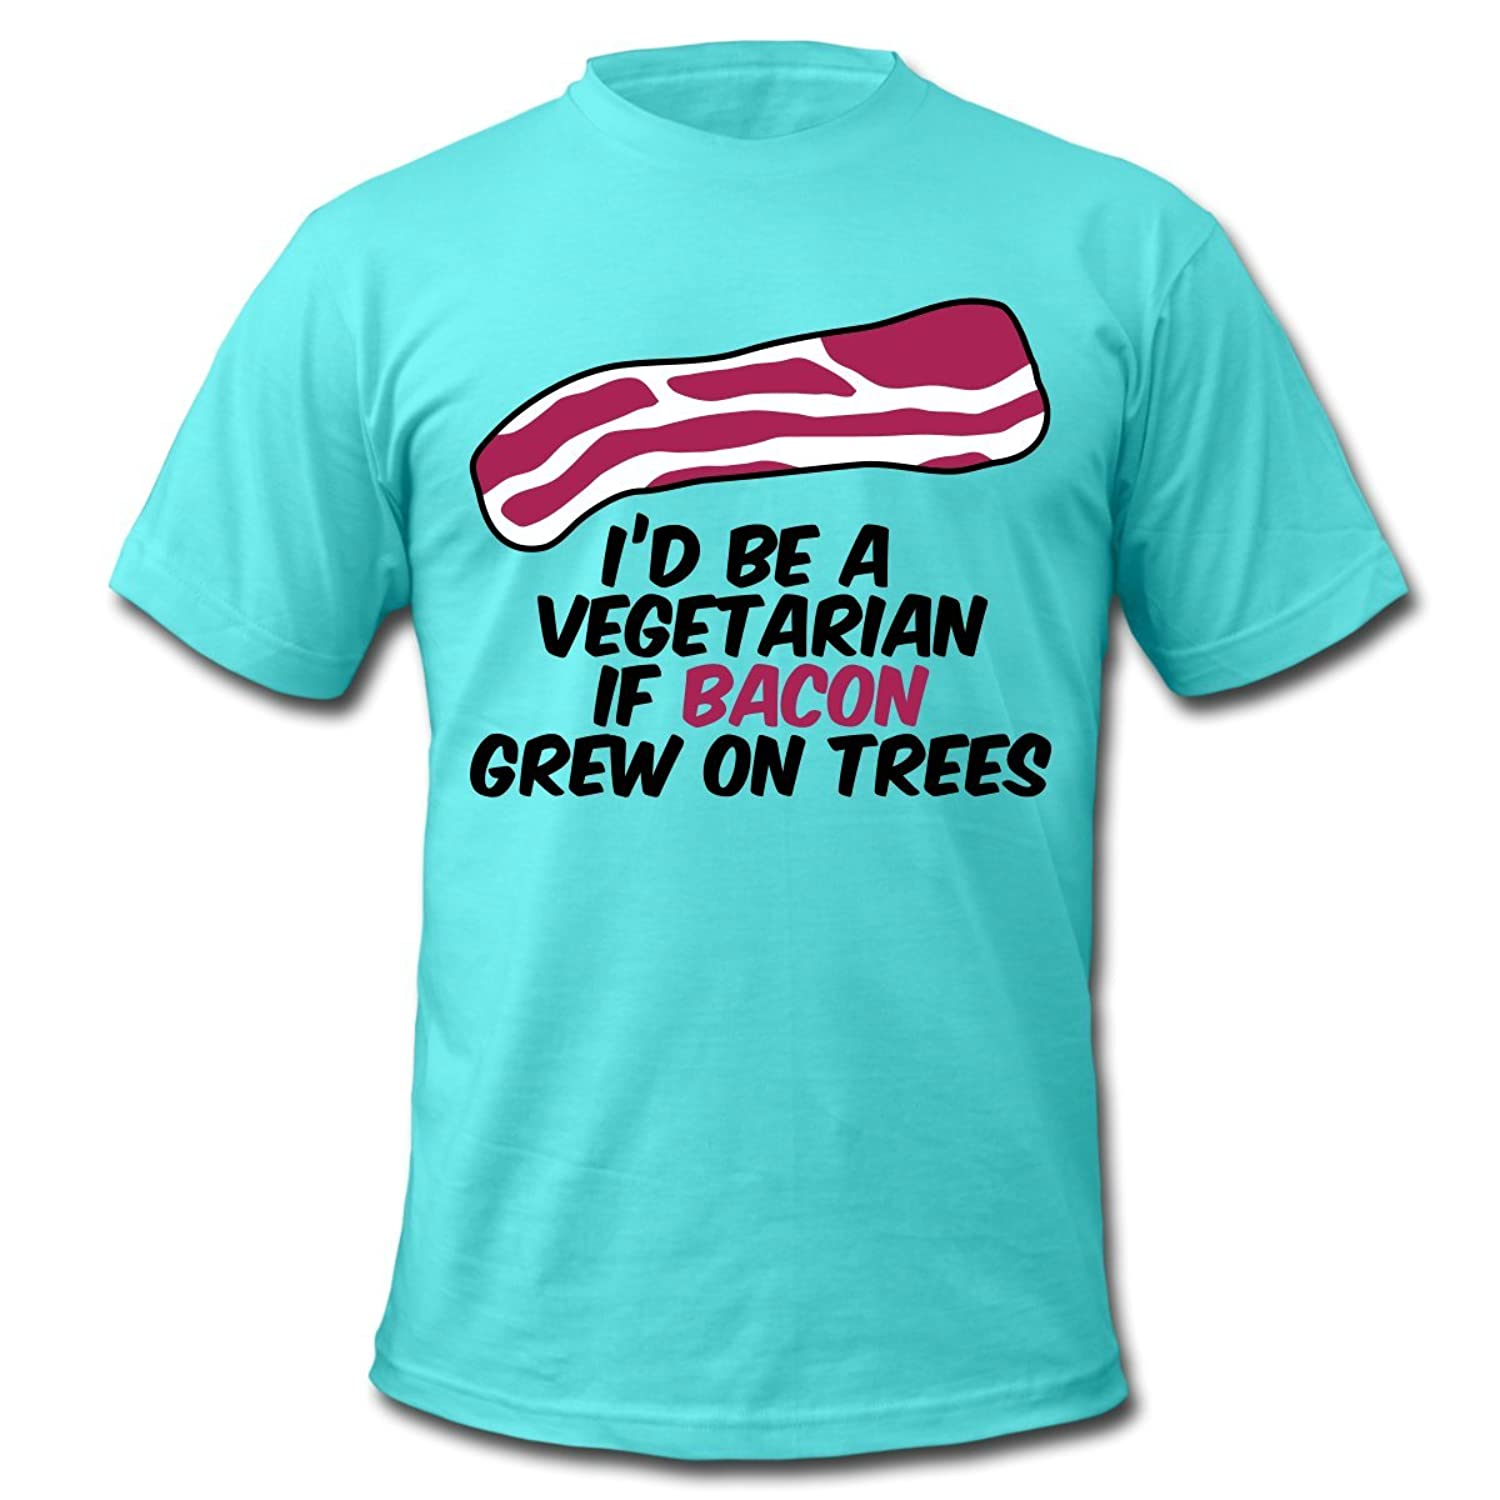 Bacon on trees Men's T-Shirt by American Apparel by Spreadshirt??